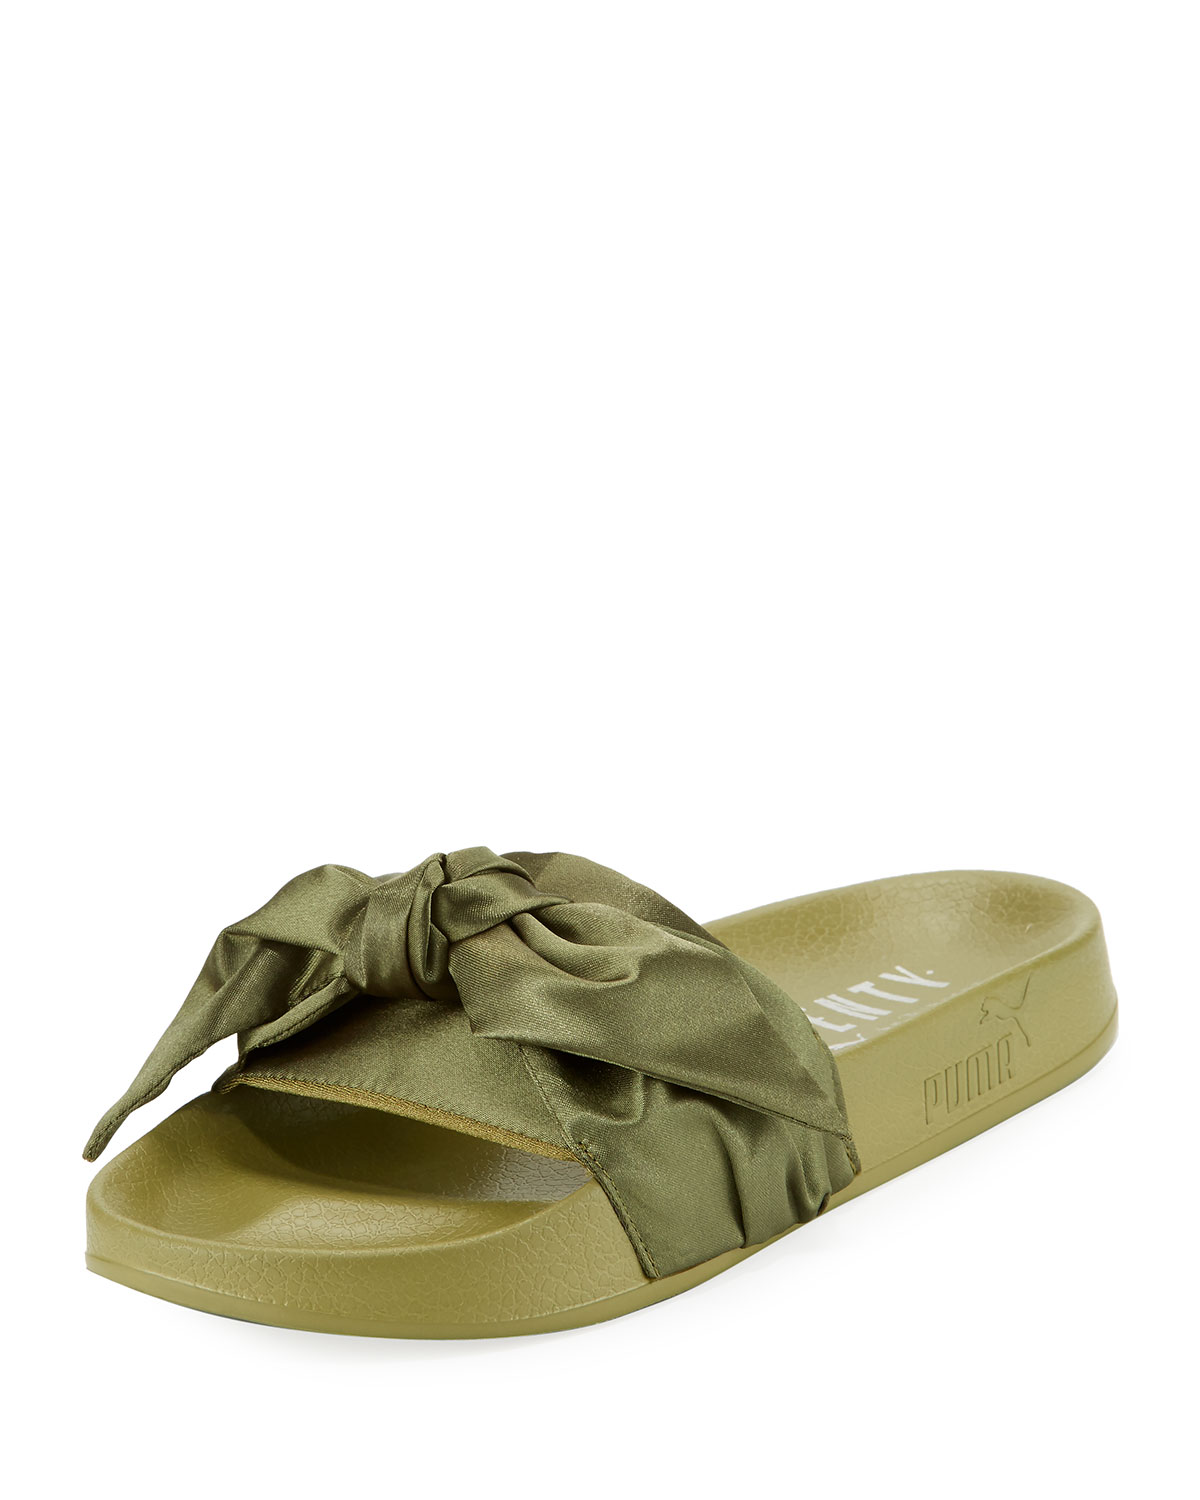 outlet store 2027e 9c98c Bow Satin Flat Slide Sandal, Green